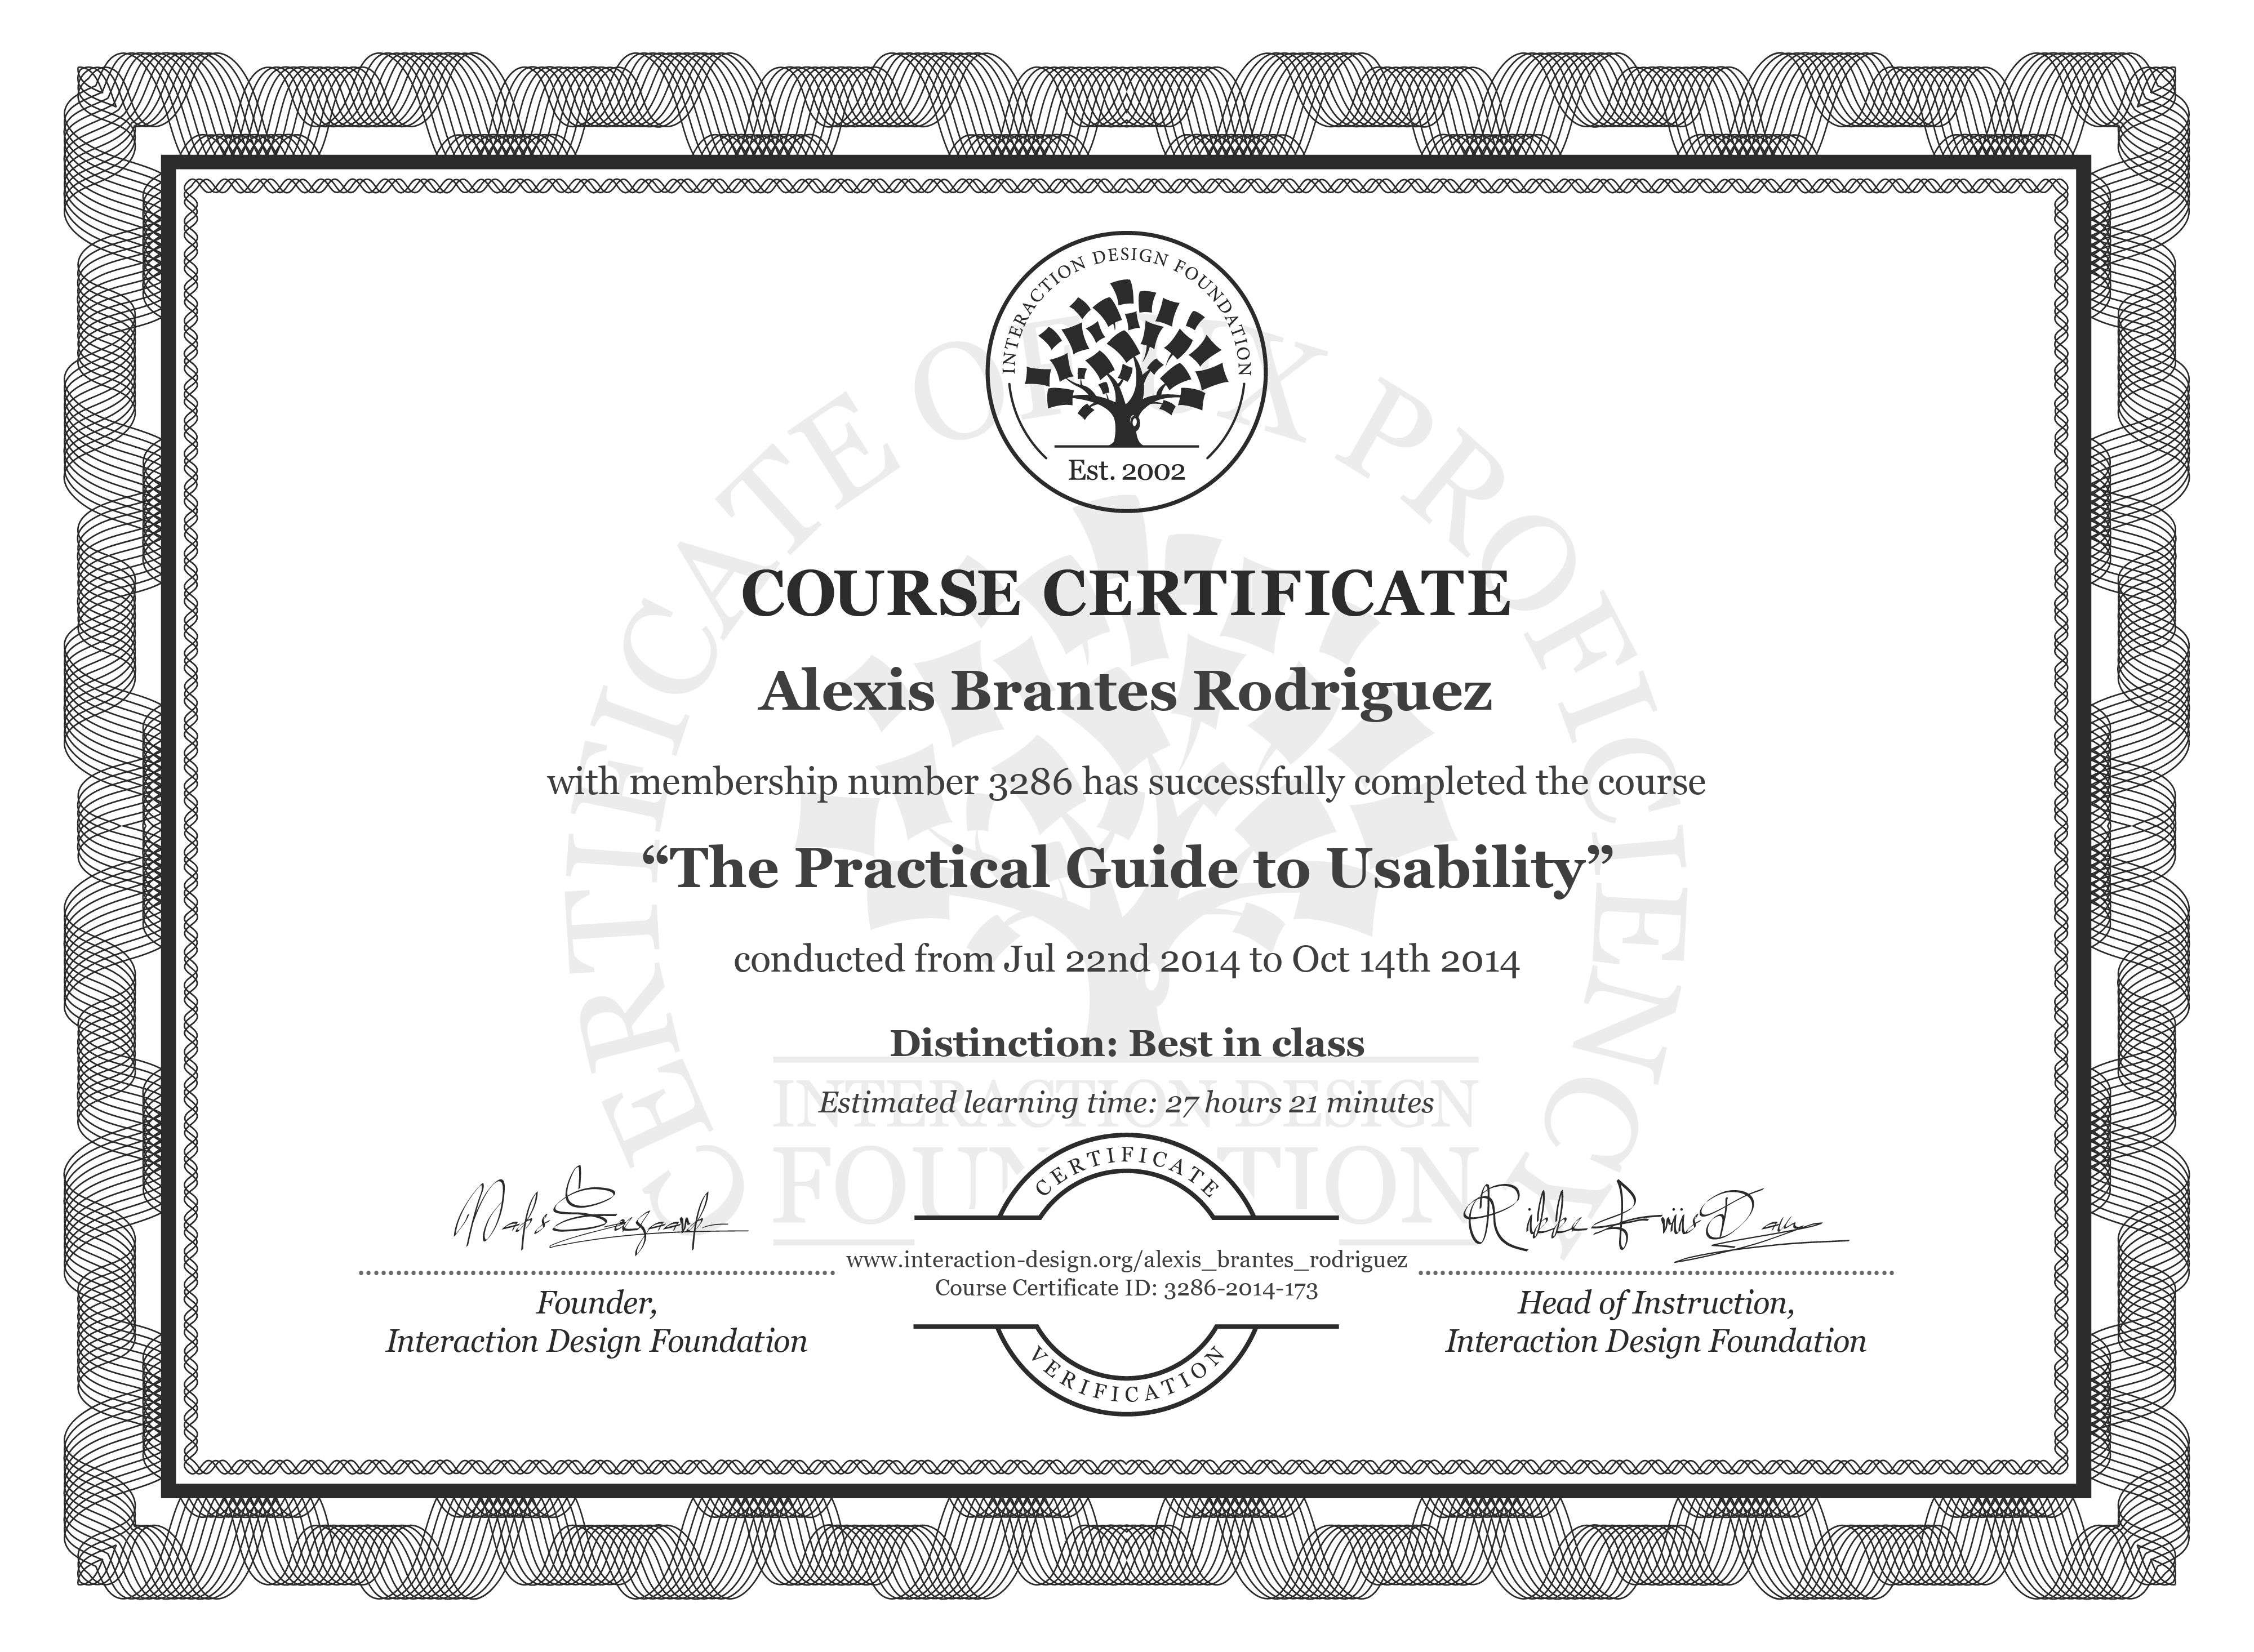 Alexis Brantes Rodriguez: Course Certificate - The Practical Guide to Usability